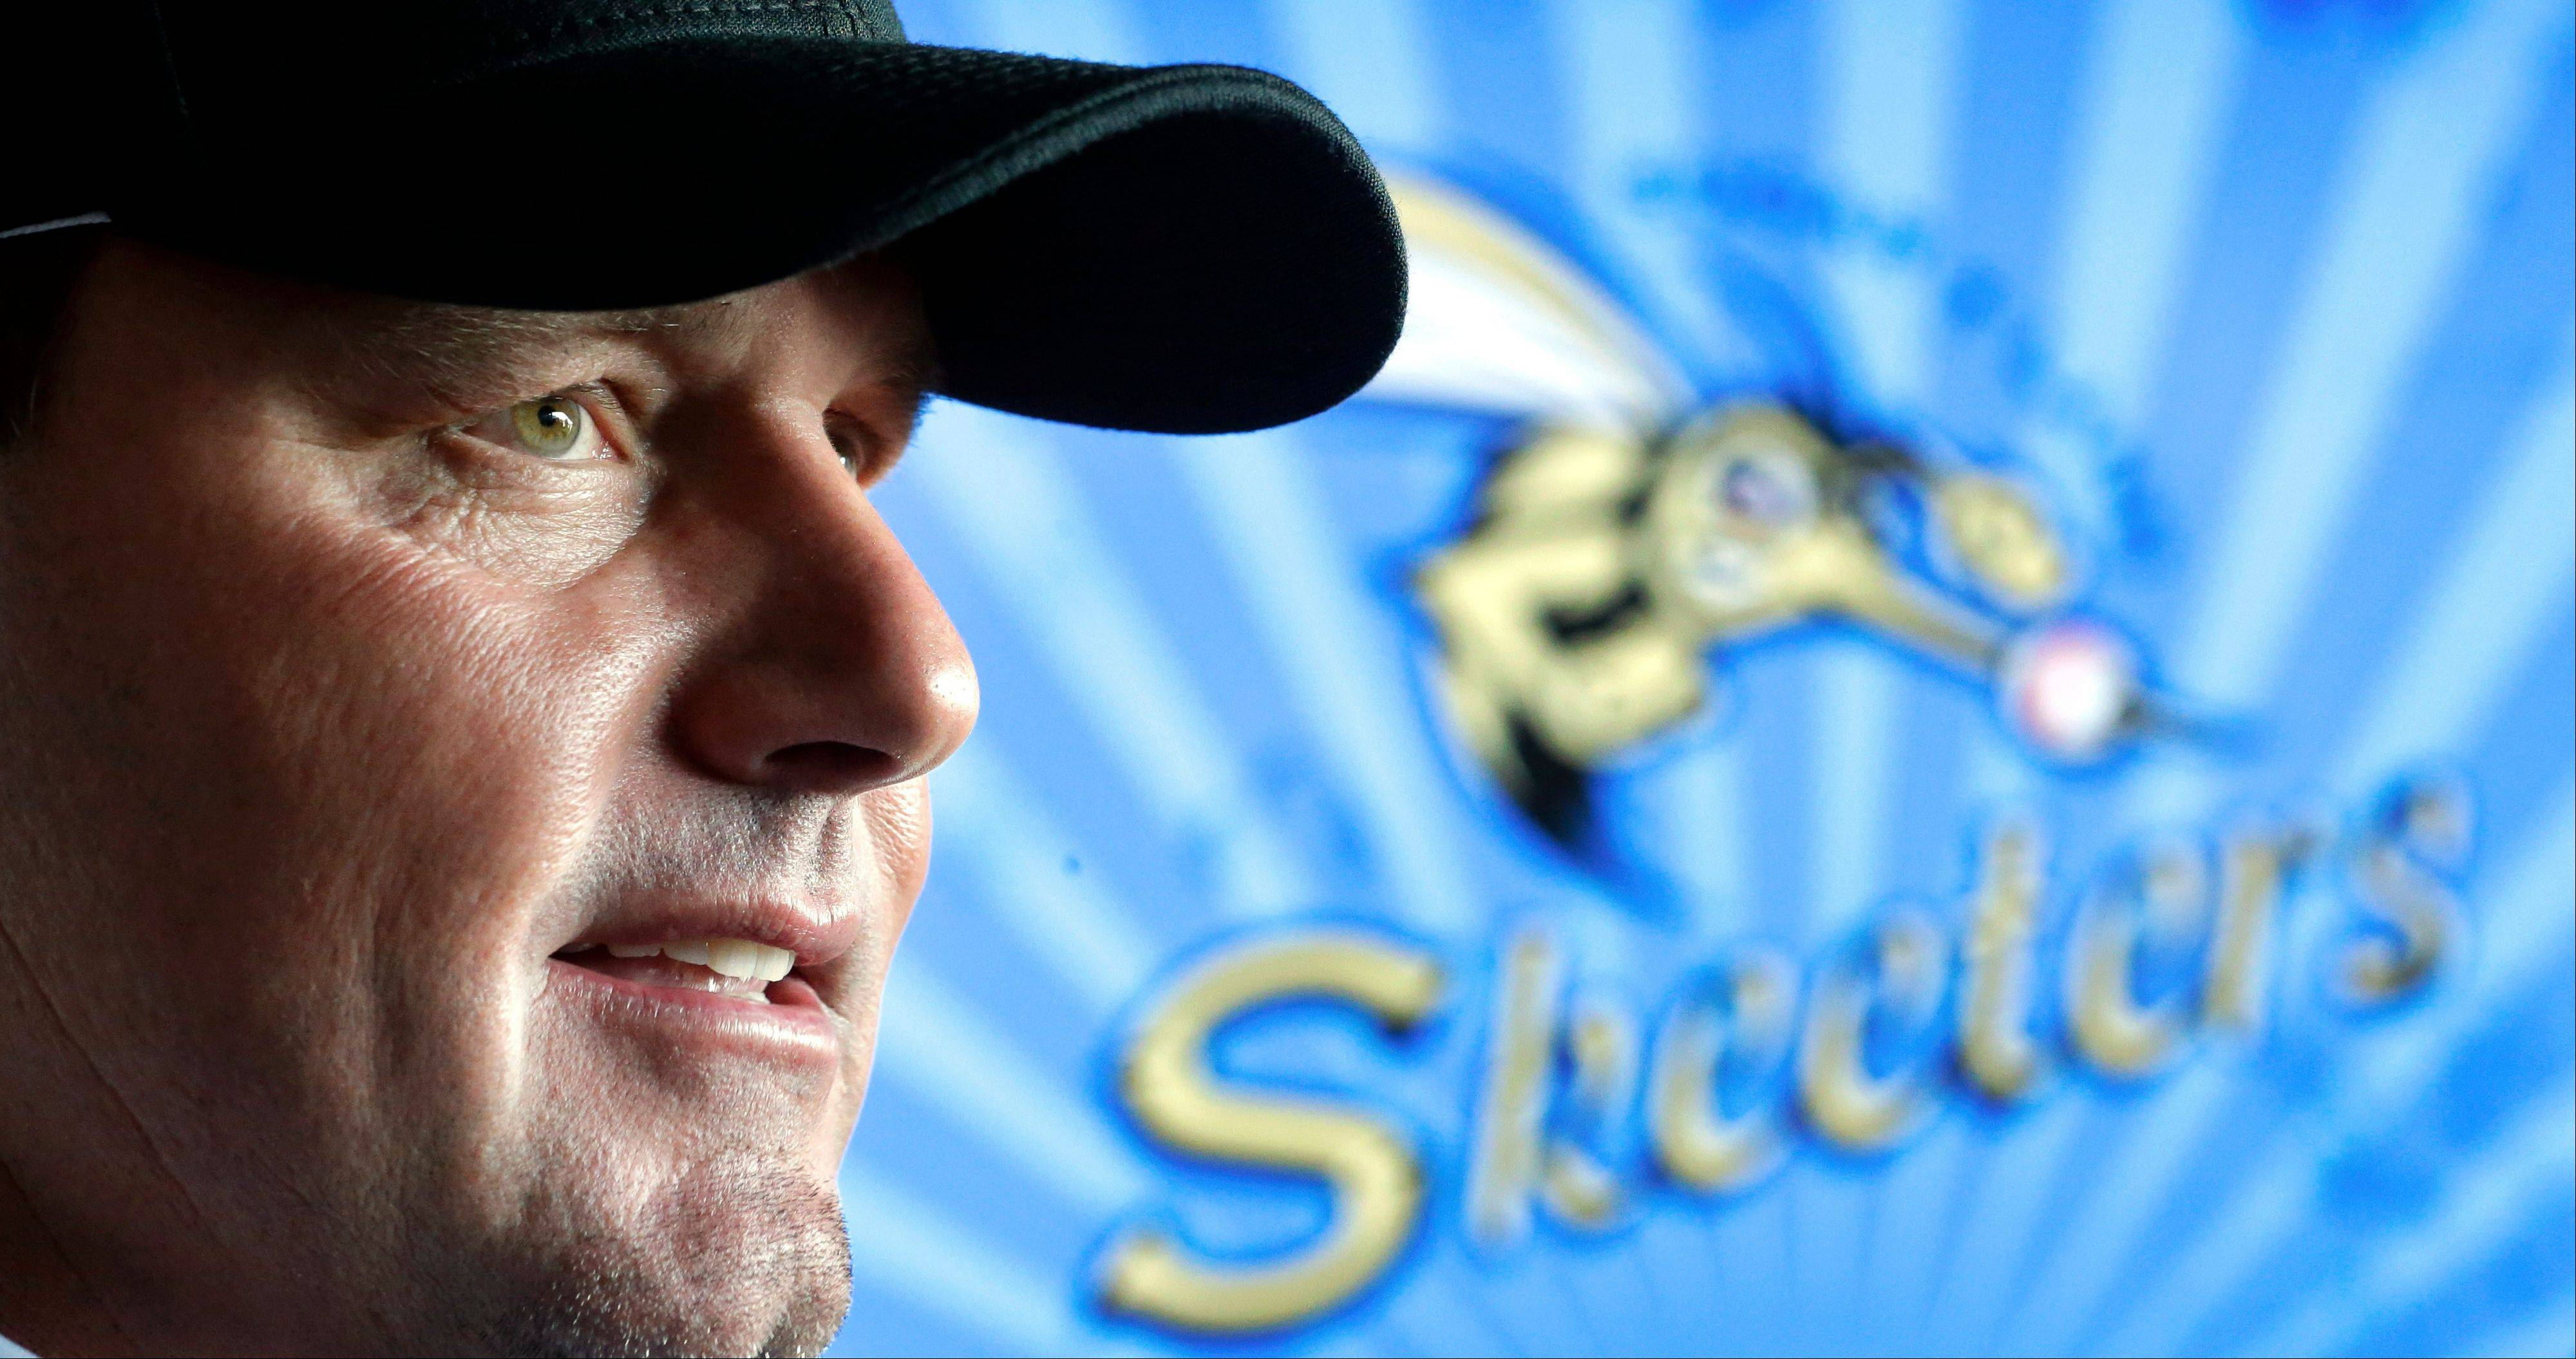 Roger Clemens talks with reporters Tuesday after a news conference officially announcing his signing with the Sugar Land Skeeters baseball team in Sugar Land, Texas.